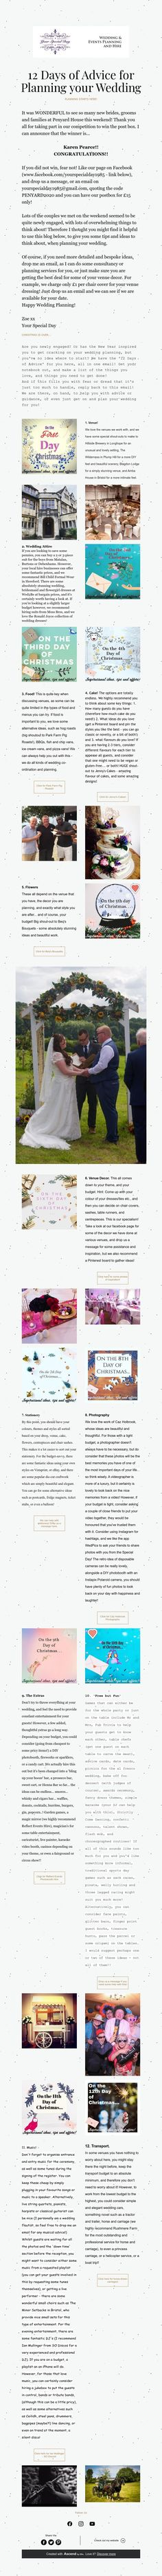 12 Days of Advice for Planning your Wedding    PLANNING STARTS HERE! Plan Your Wedding, Wedding Planning, 12 Days, Special Day, Wedding Ceremony, Things To Think About, Advice, Messages, How To Plan